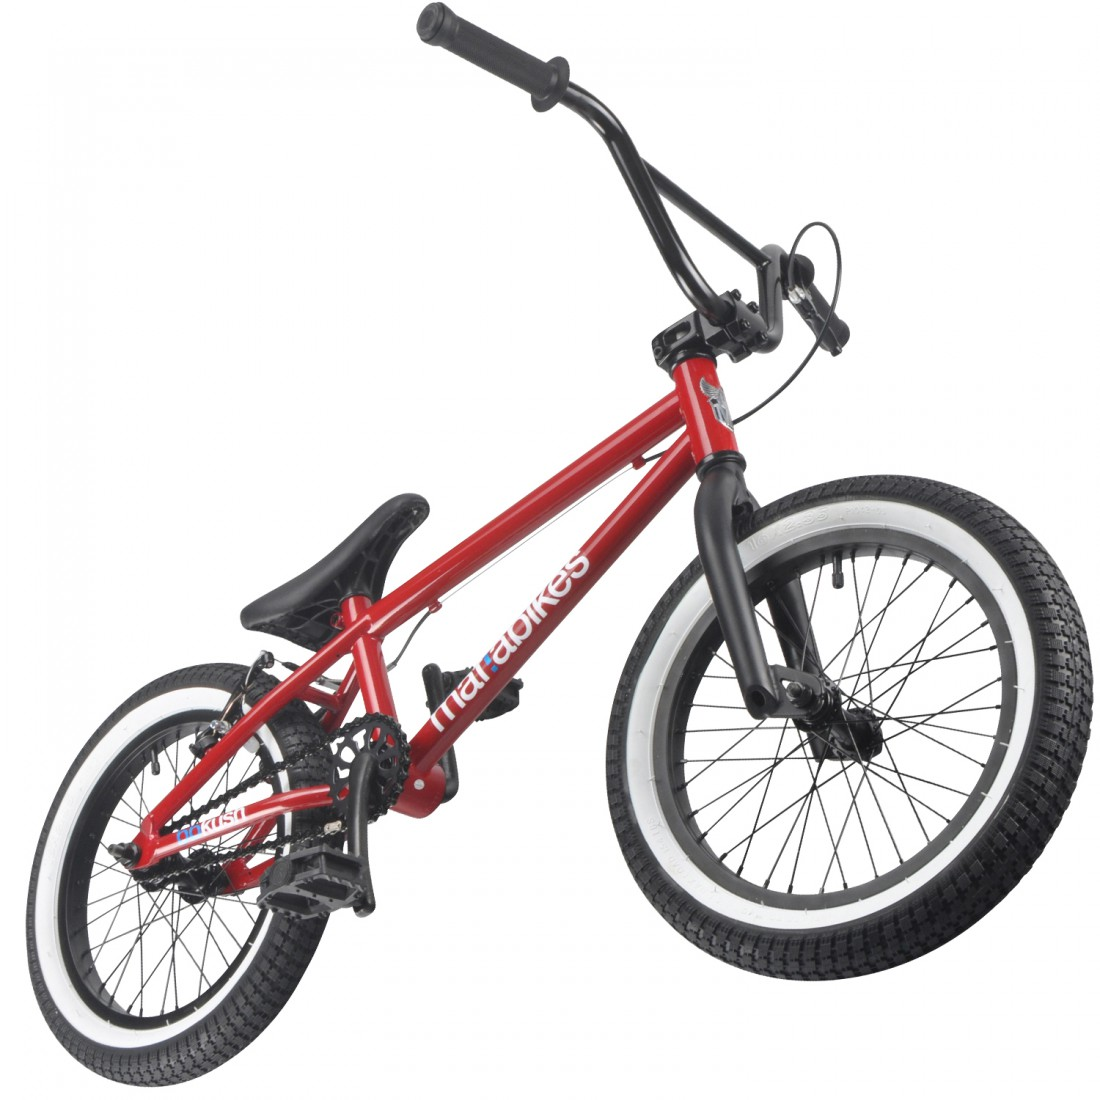 16 zoll mafiabikes bmx bike bbkush verschiedene. Black Bedroom Furniture Sets. Home Design Ideas